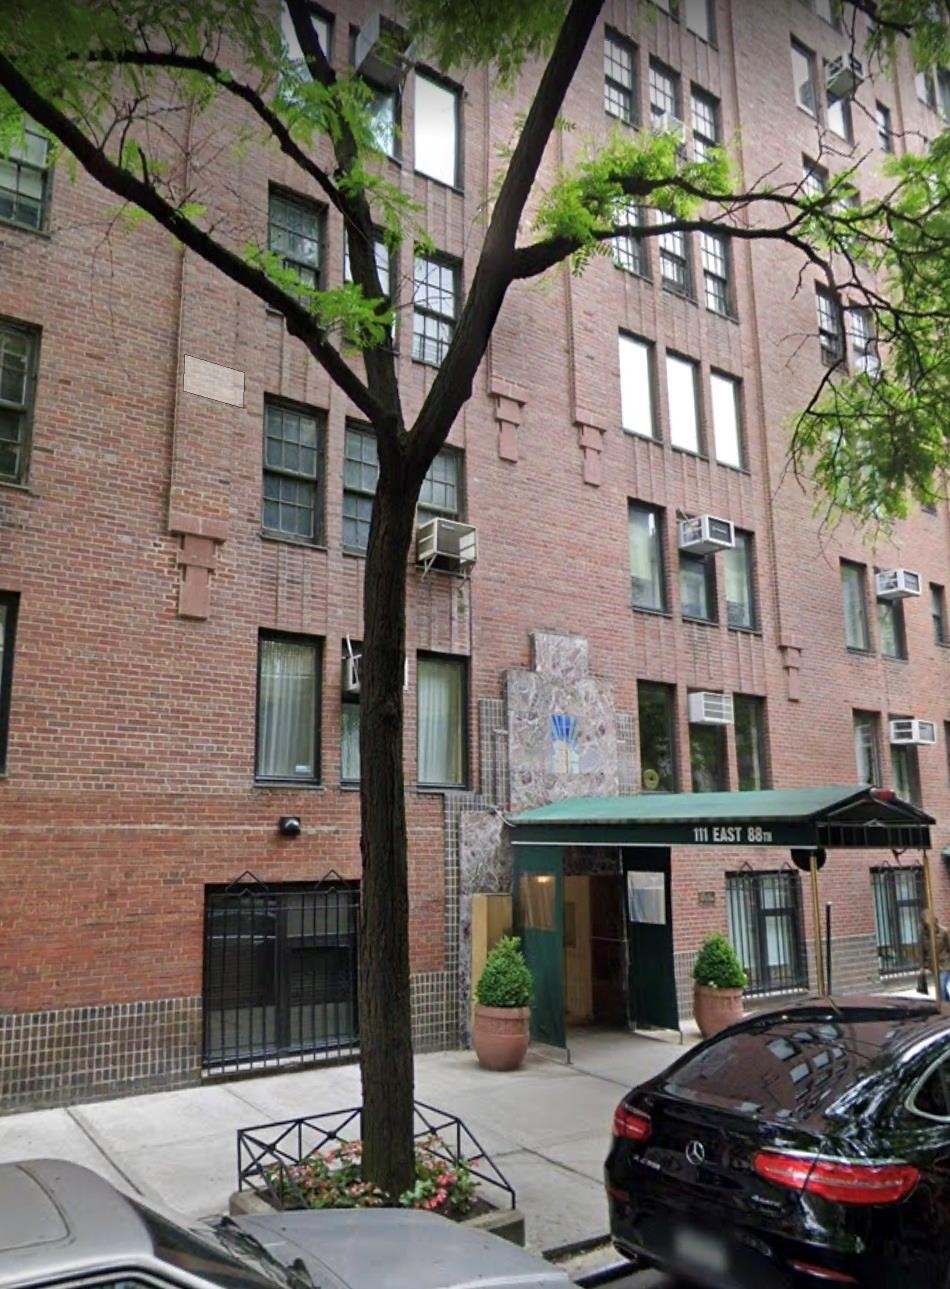 Property à 111 East 88th St, 8EF Carnegie Hill, New York, NY 10128